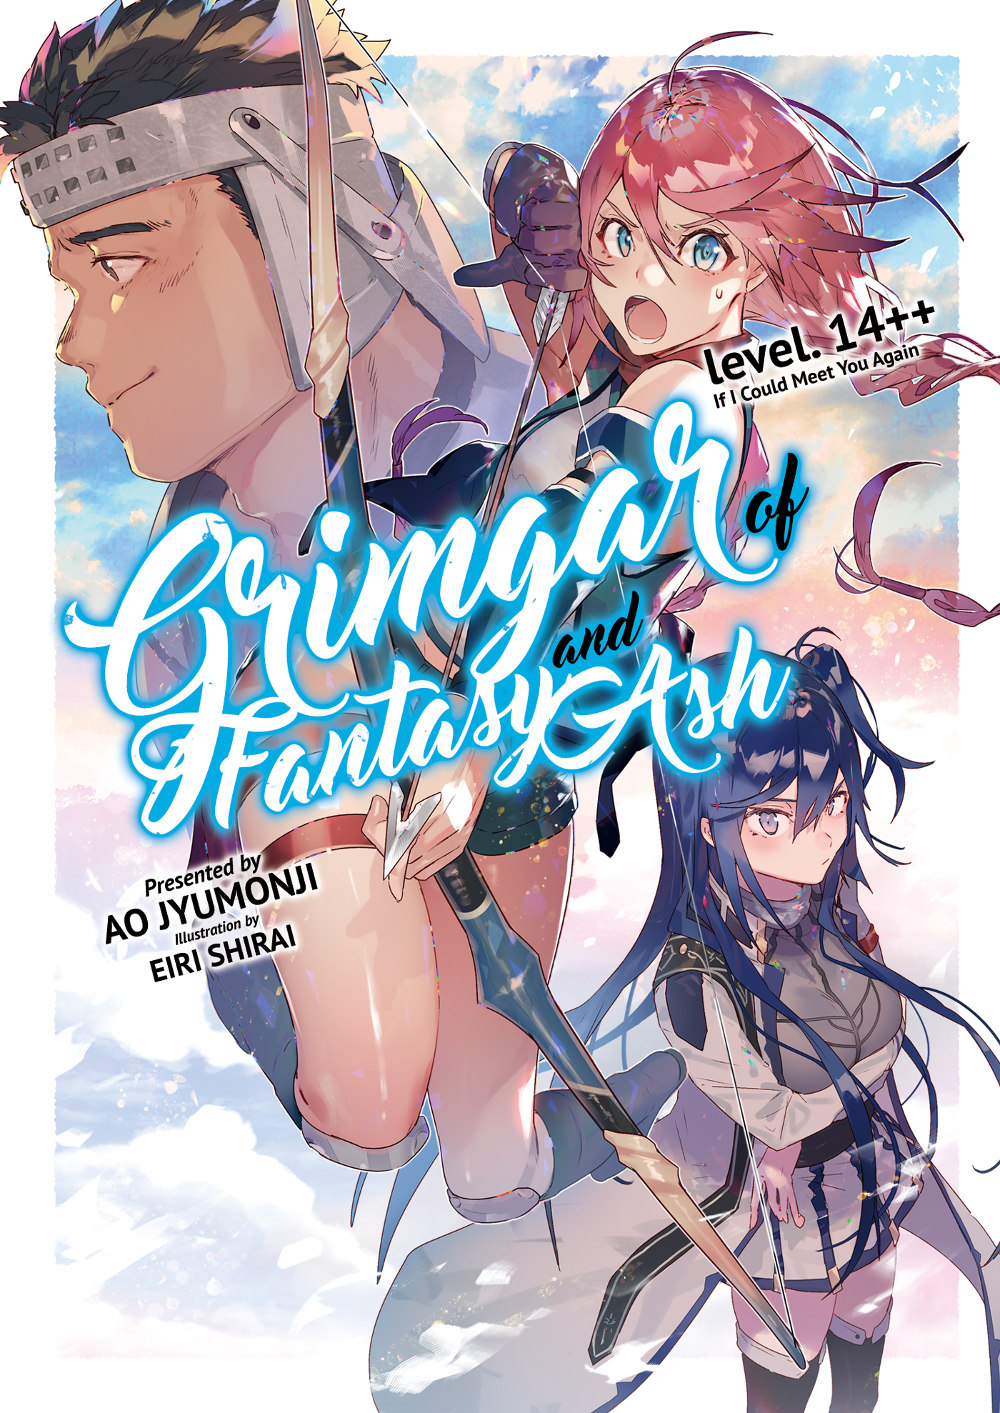 Grimgar of Fantasy and Ash level.14++ If I Could Meet You Again